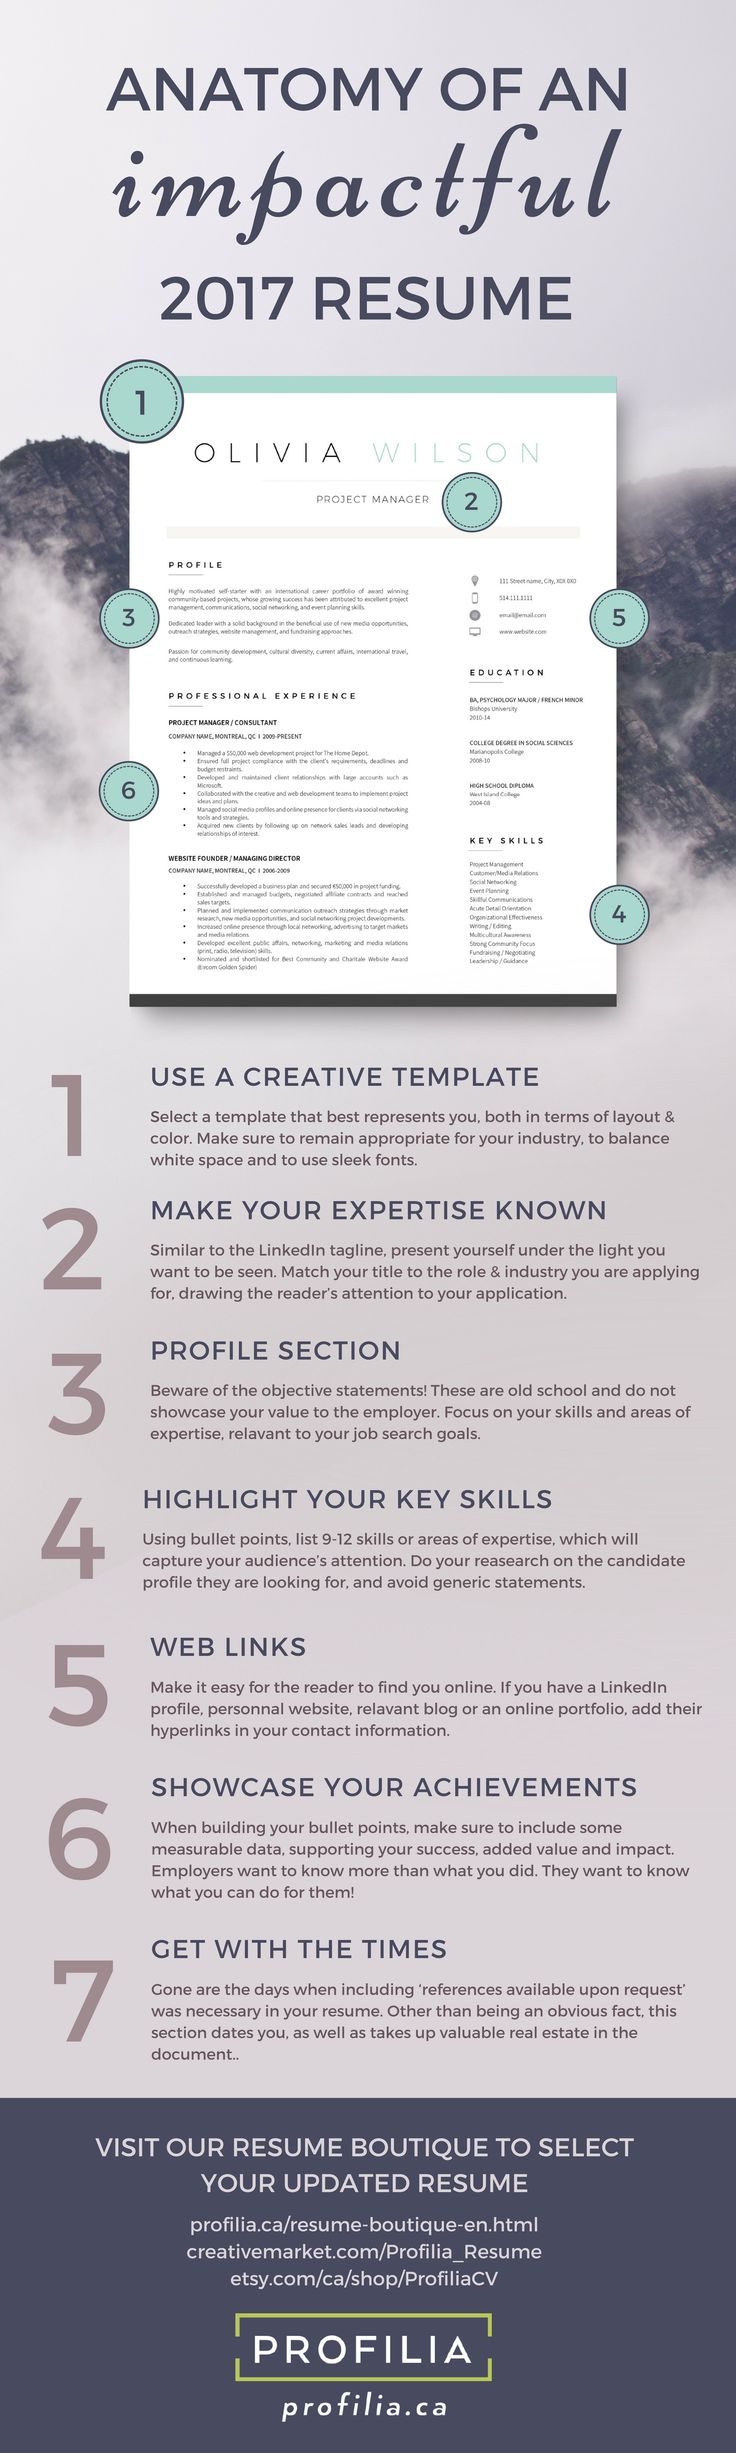 Best Resume Templates Boutique Images On   Resume